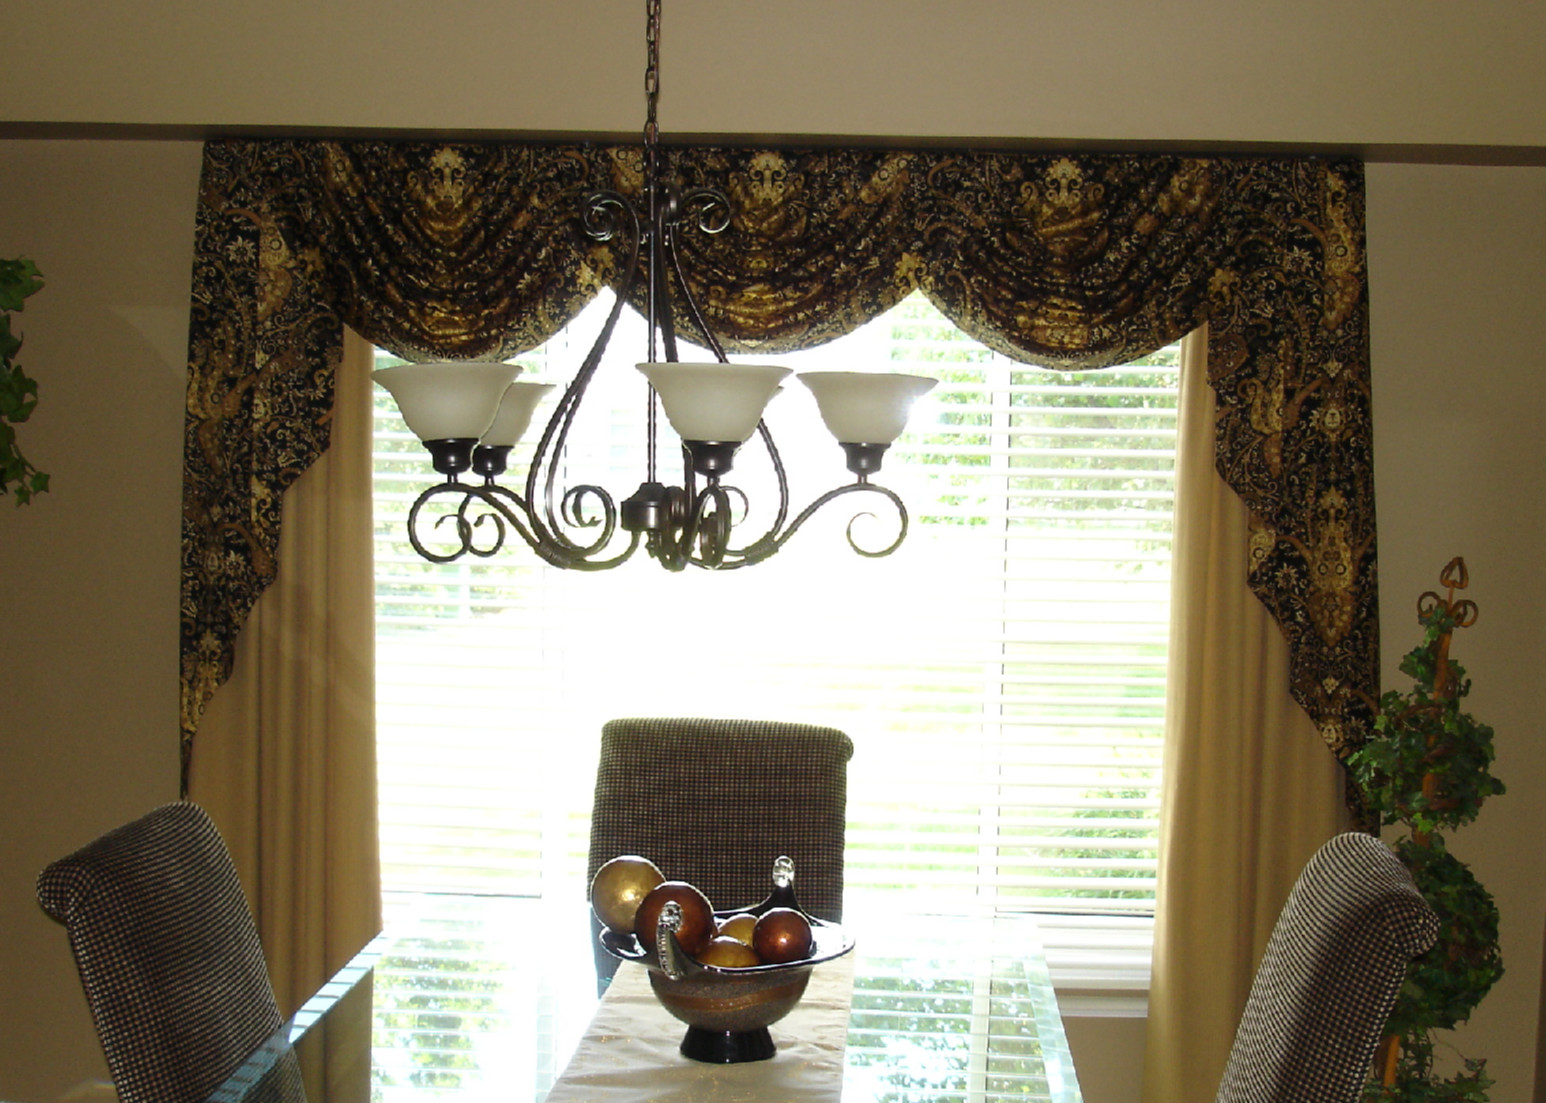 Dining room bay window treatment ideas for Dining room window treatments